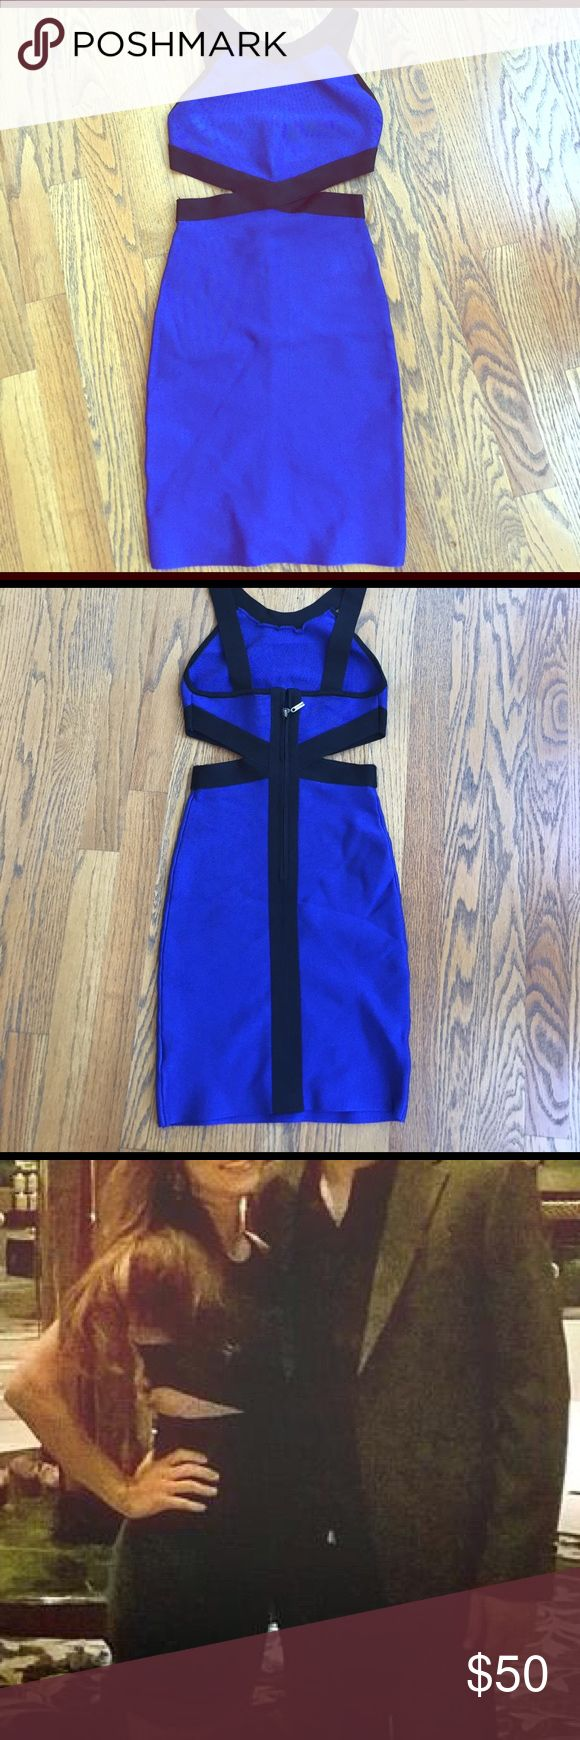 Guess by Marciano royal blue cut out dress Like new ,worn once and dry cleaned.  Size XS. Guess by Marciano Dresses Mini